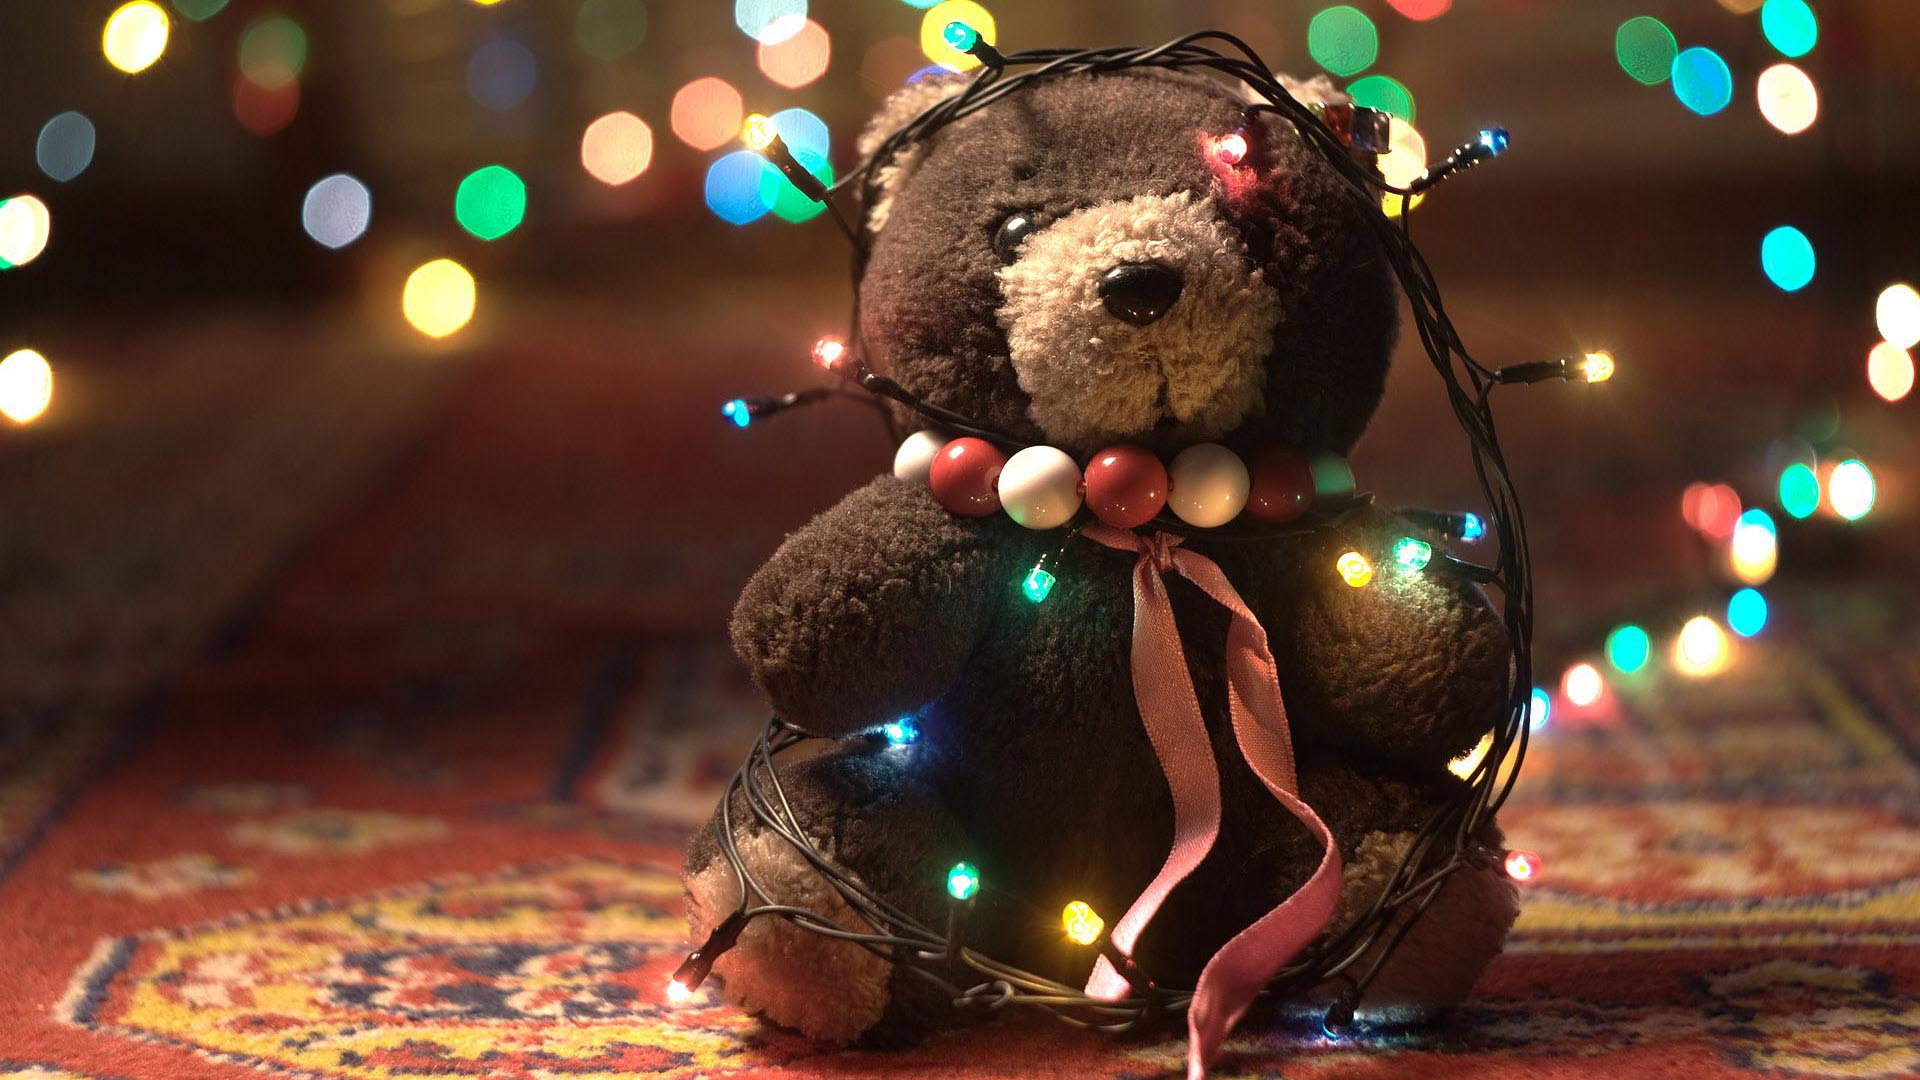 Cute Christmas Lights 24379